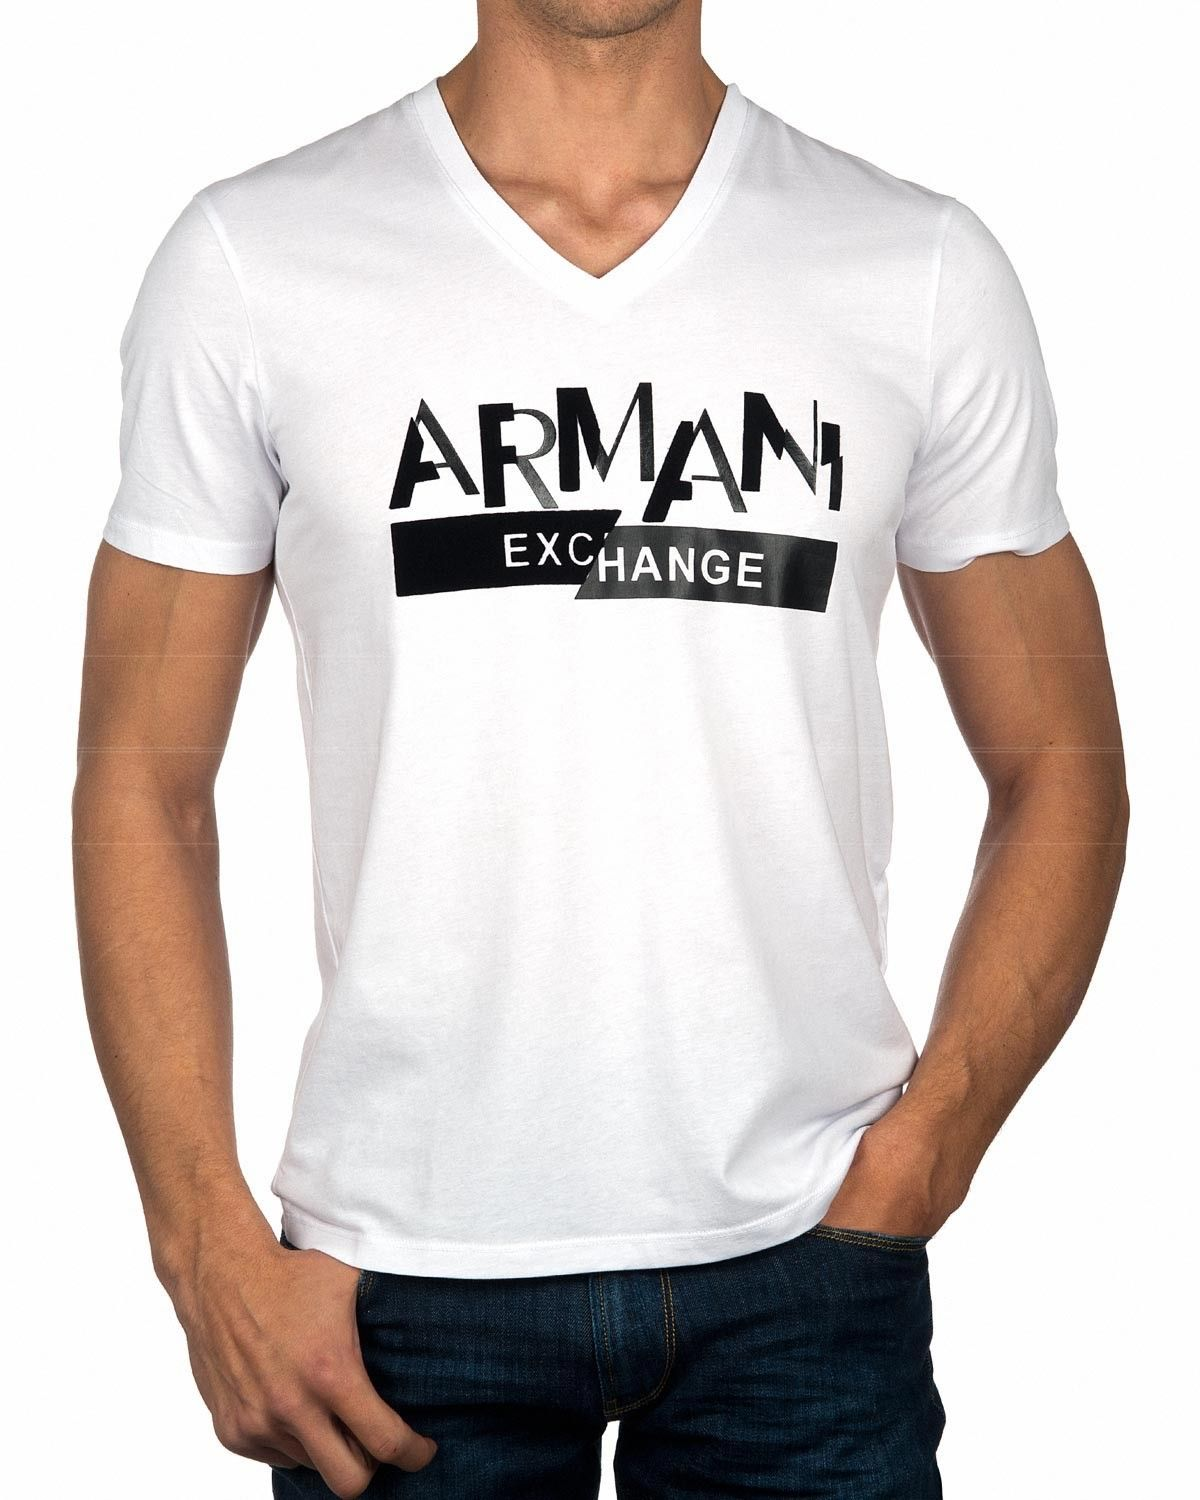 Camiseta Armani Exchange Blanca - Eagle in 2018  1d7f27c16049e